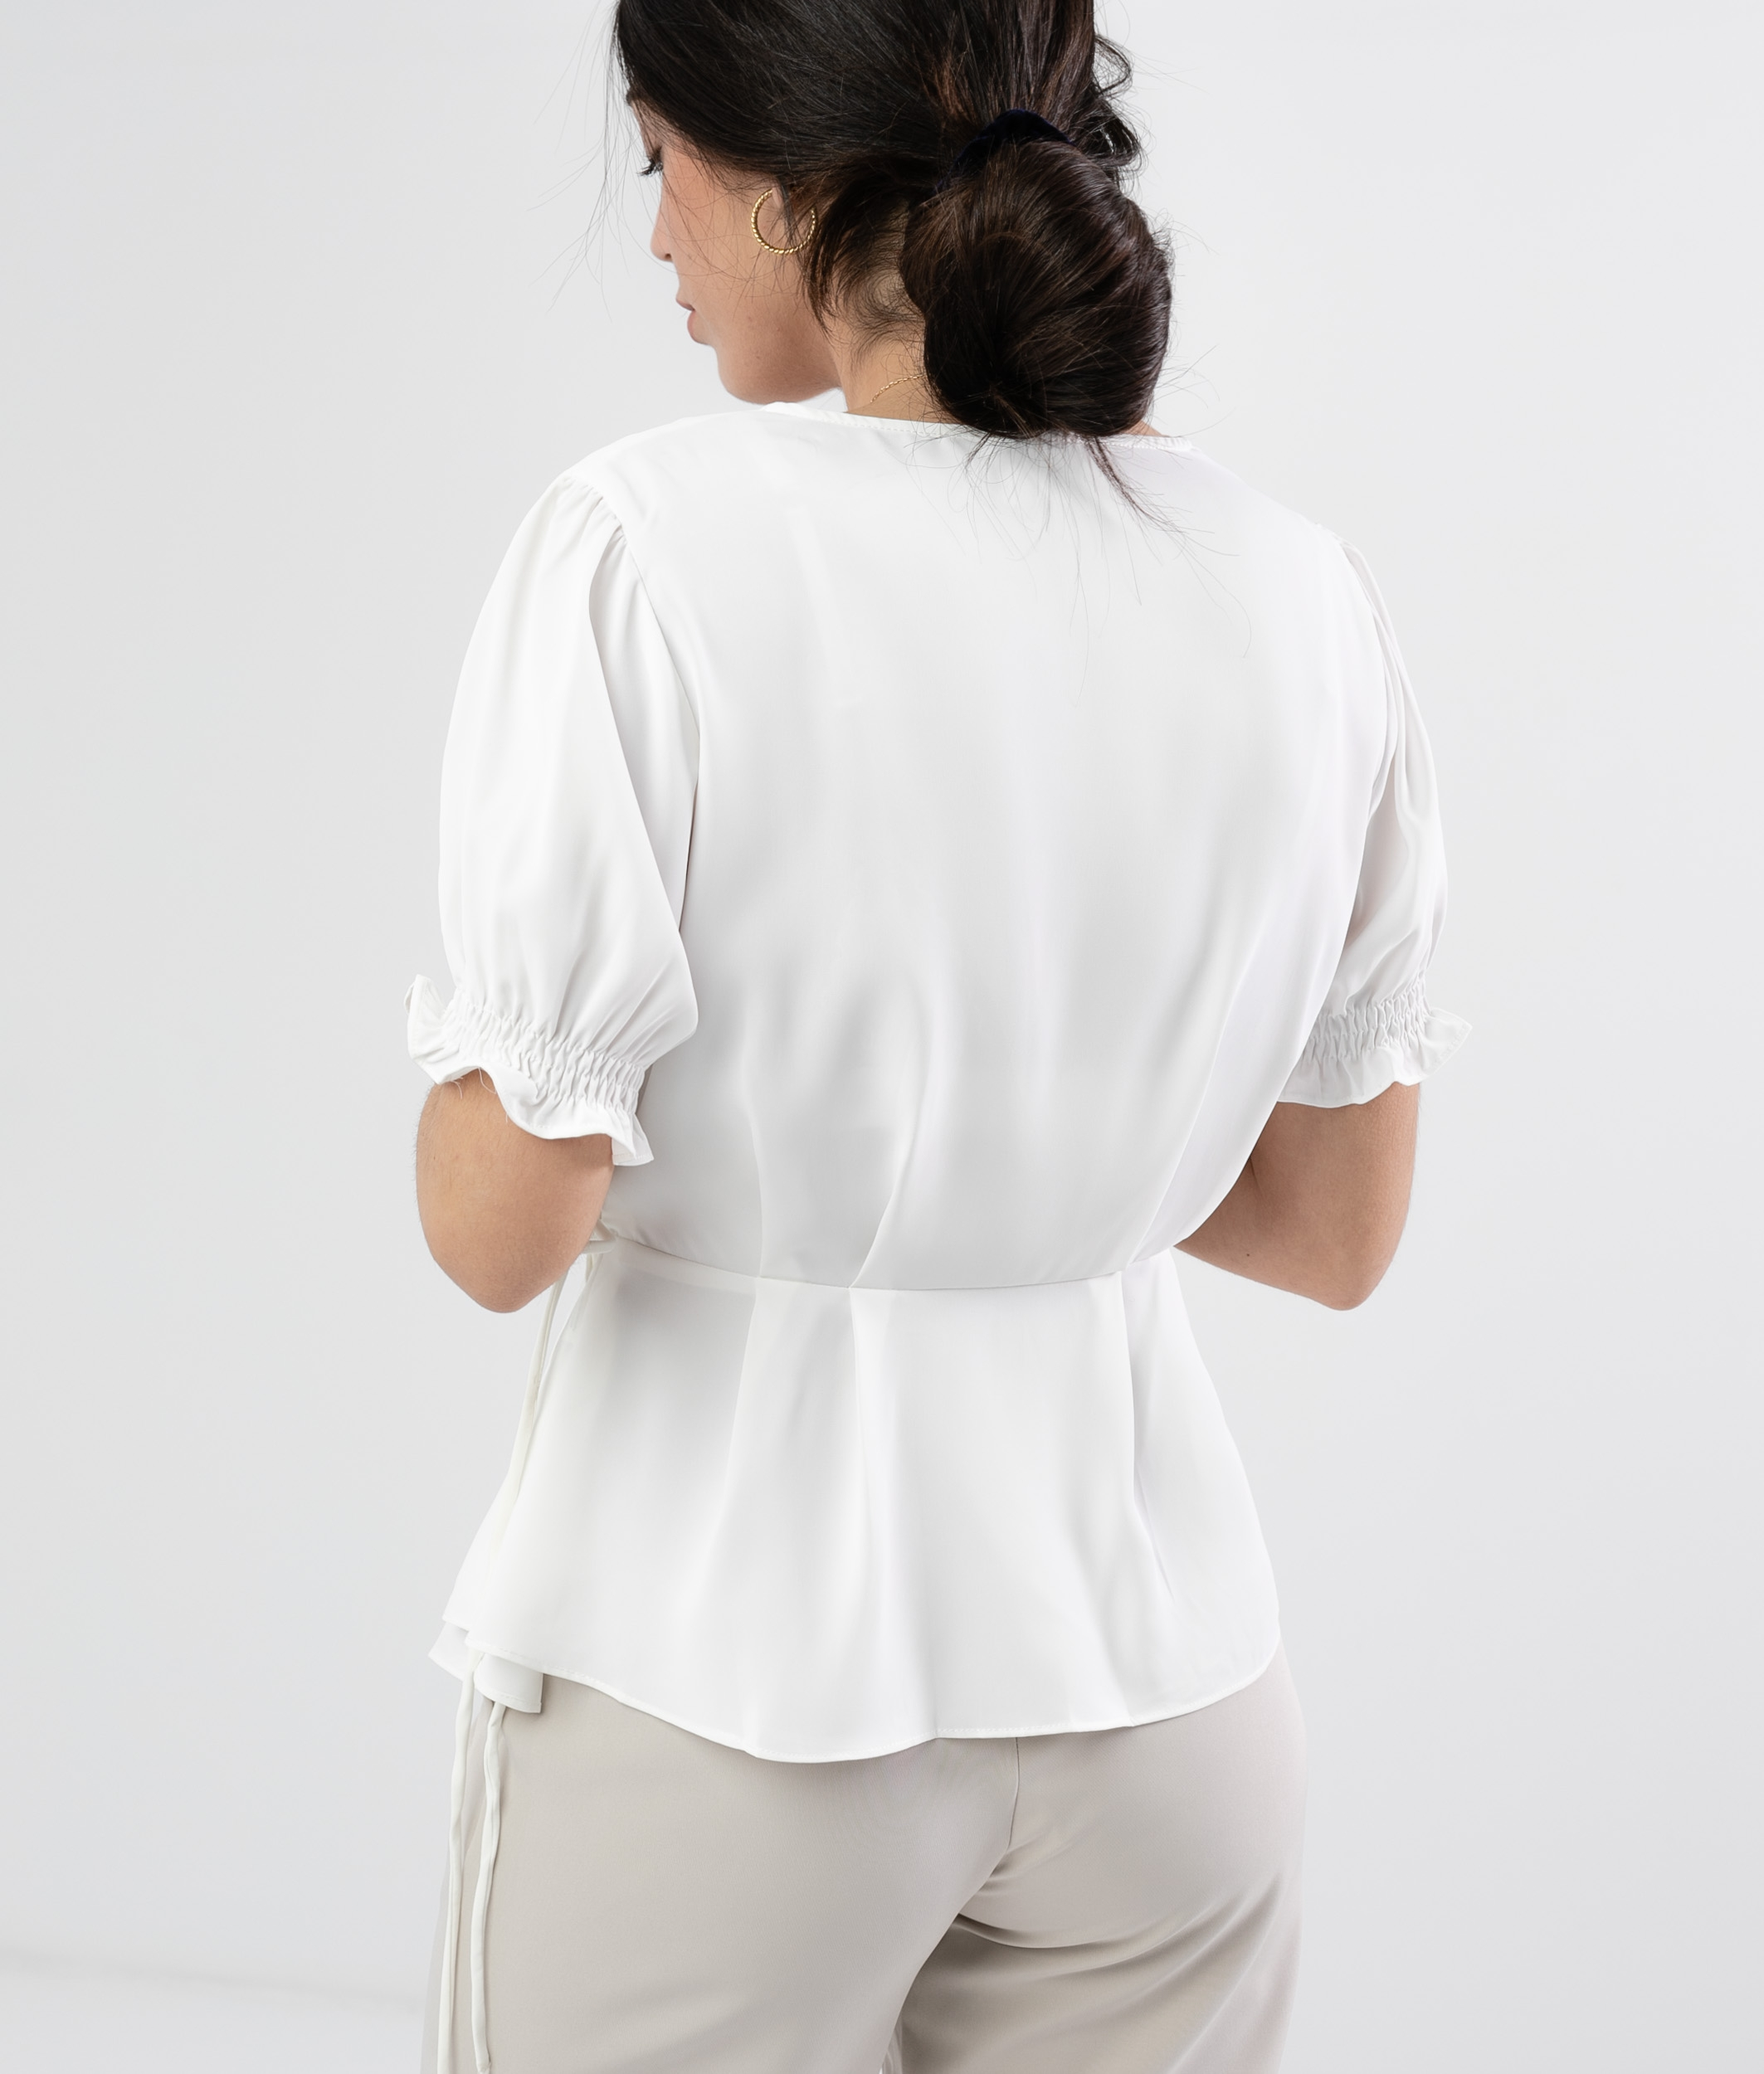 Blouse Linker - White